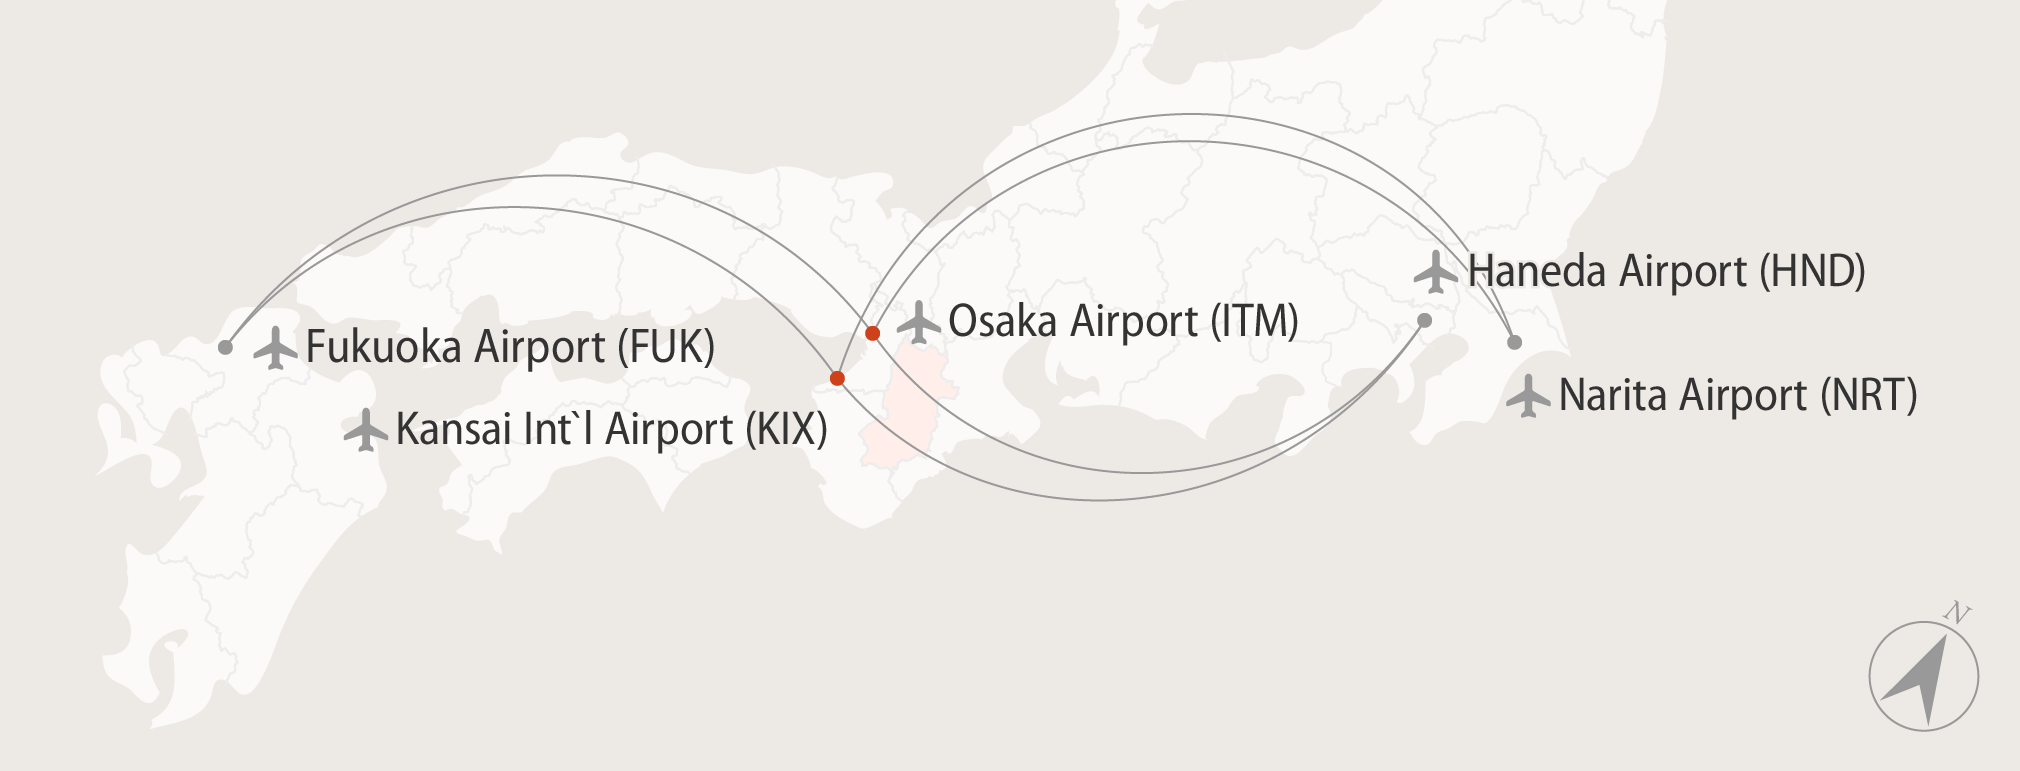 Diagram showing flights to Kansai International and Osaka airports from within Japan